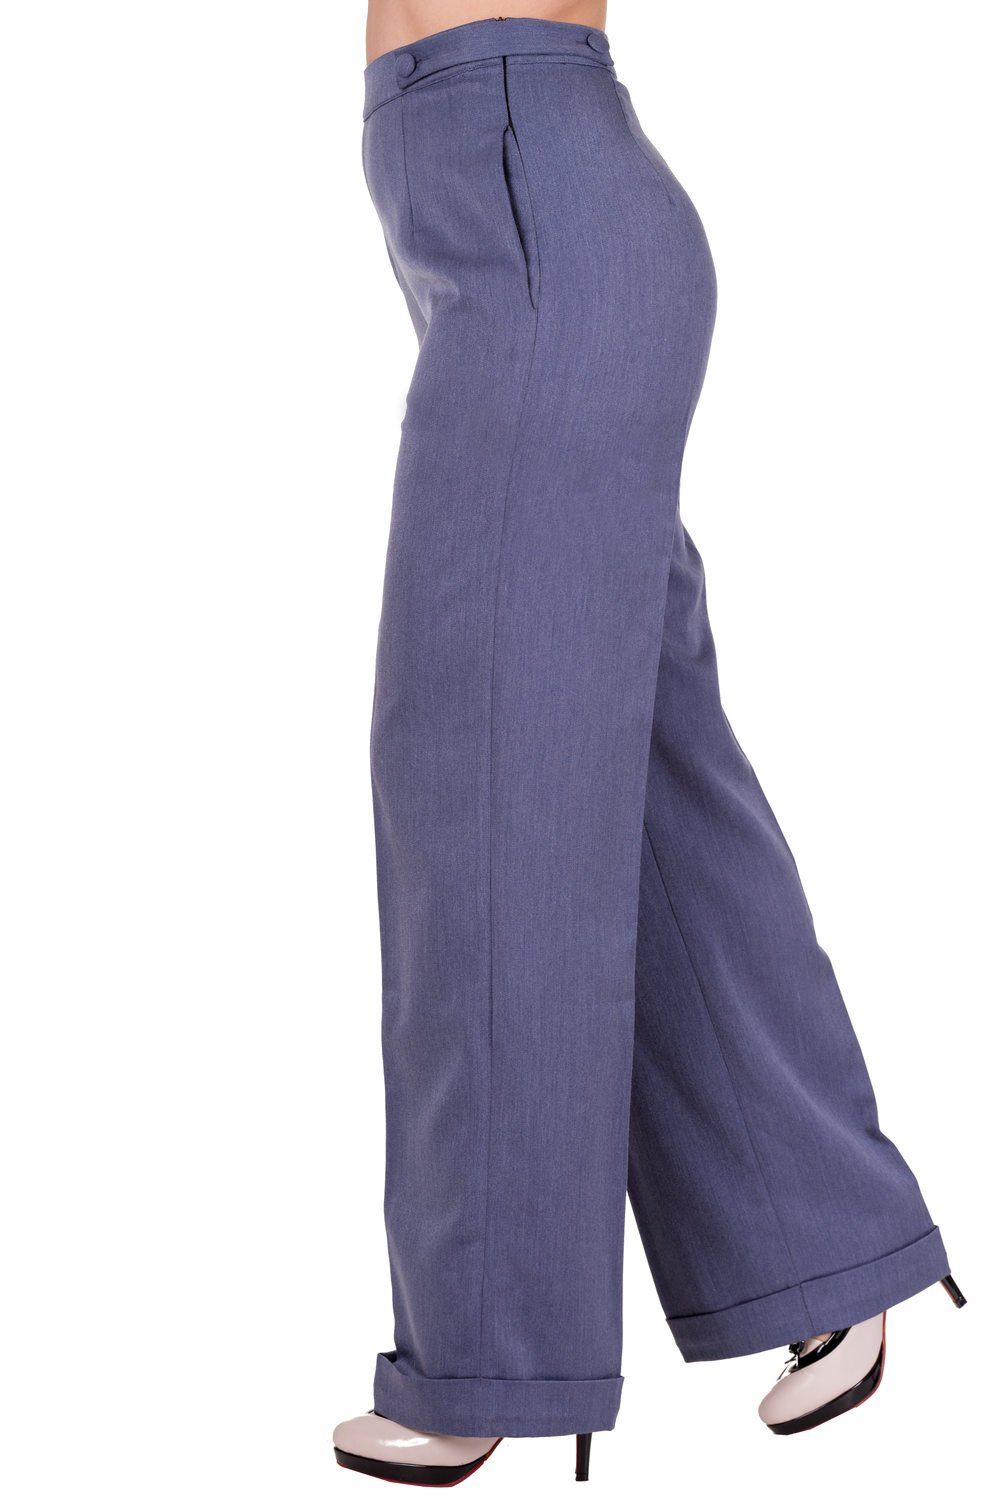 1940s Swing Pants & Sailor Trousers- Wide Leg, High Waist Denim Banned Party On Trousers - 26 to 34 Inch Waist $33.82 AT vintagedancer.com